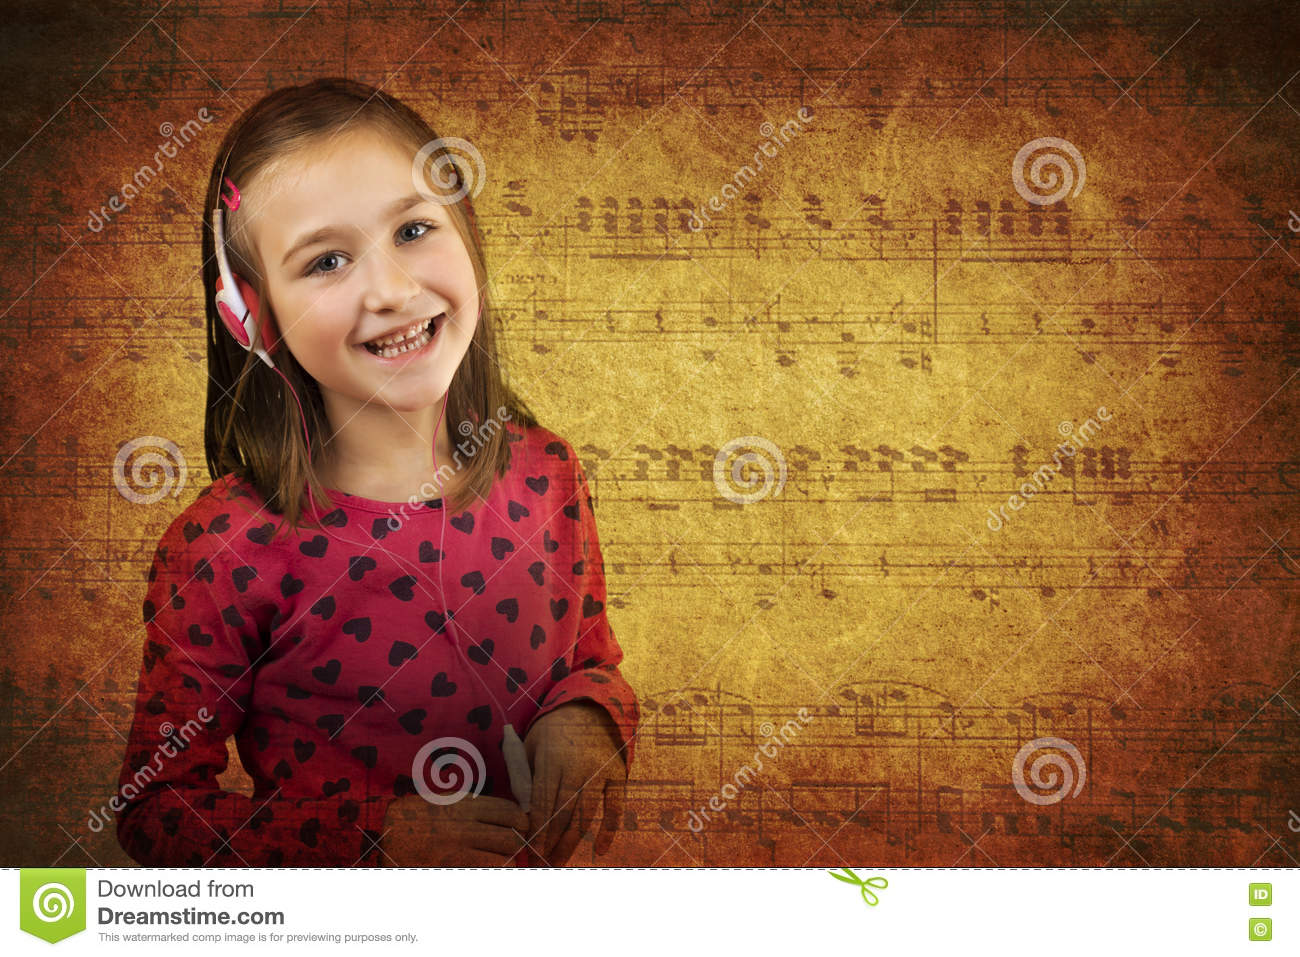 Girl Listening Music Grunge Stock Photo - Image of adorable